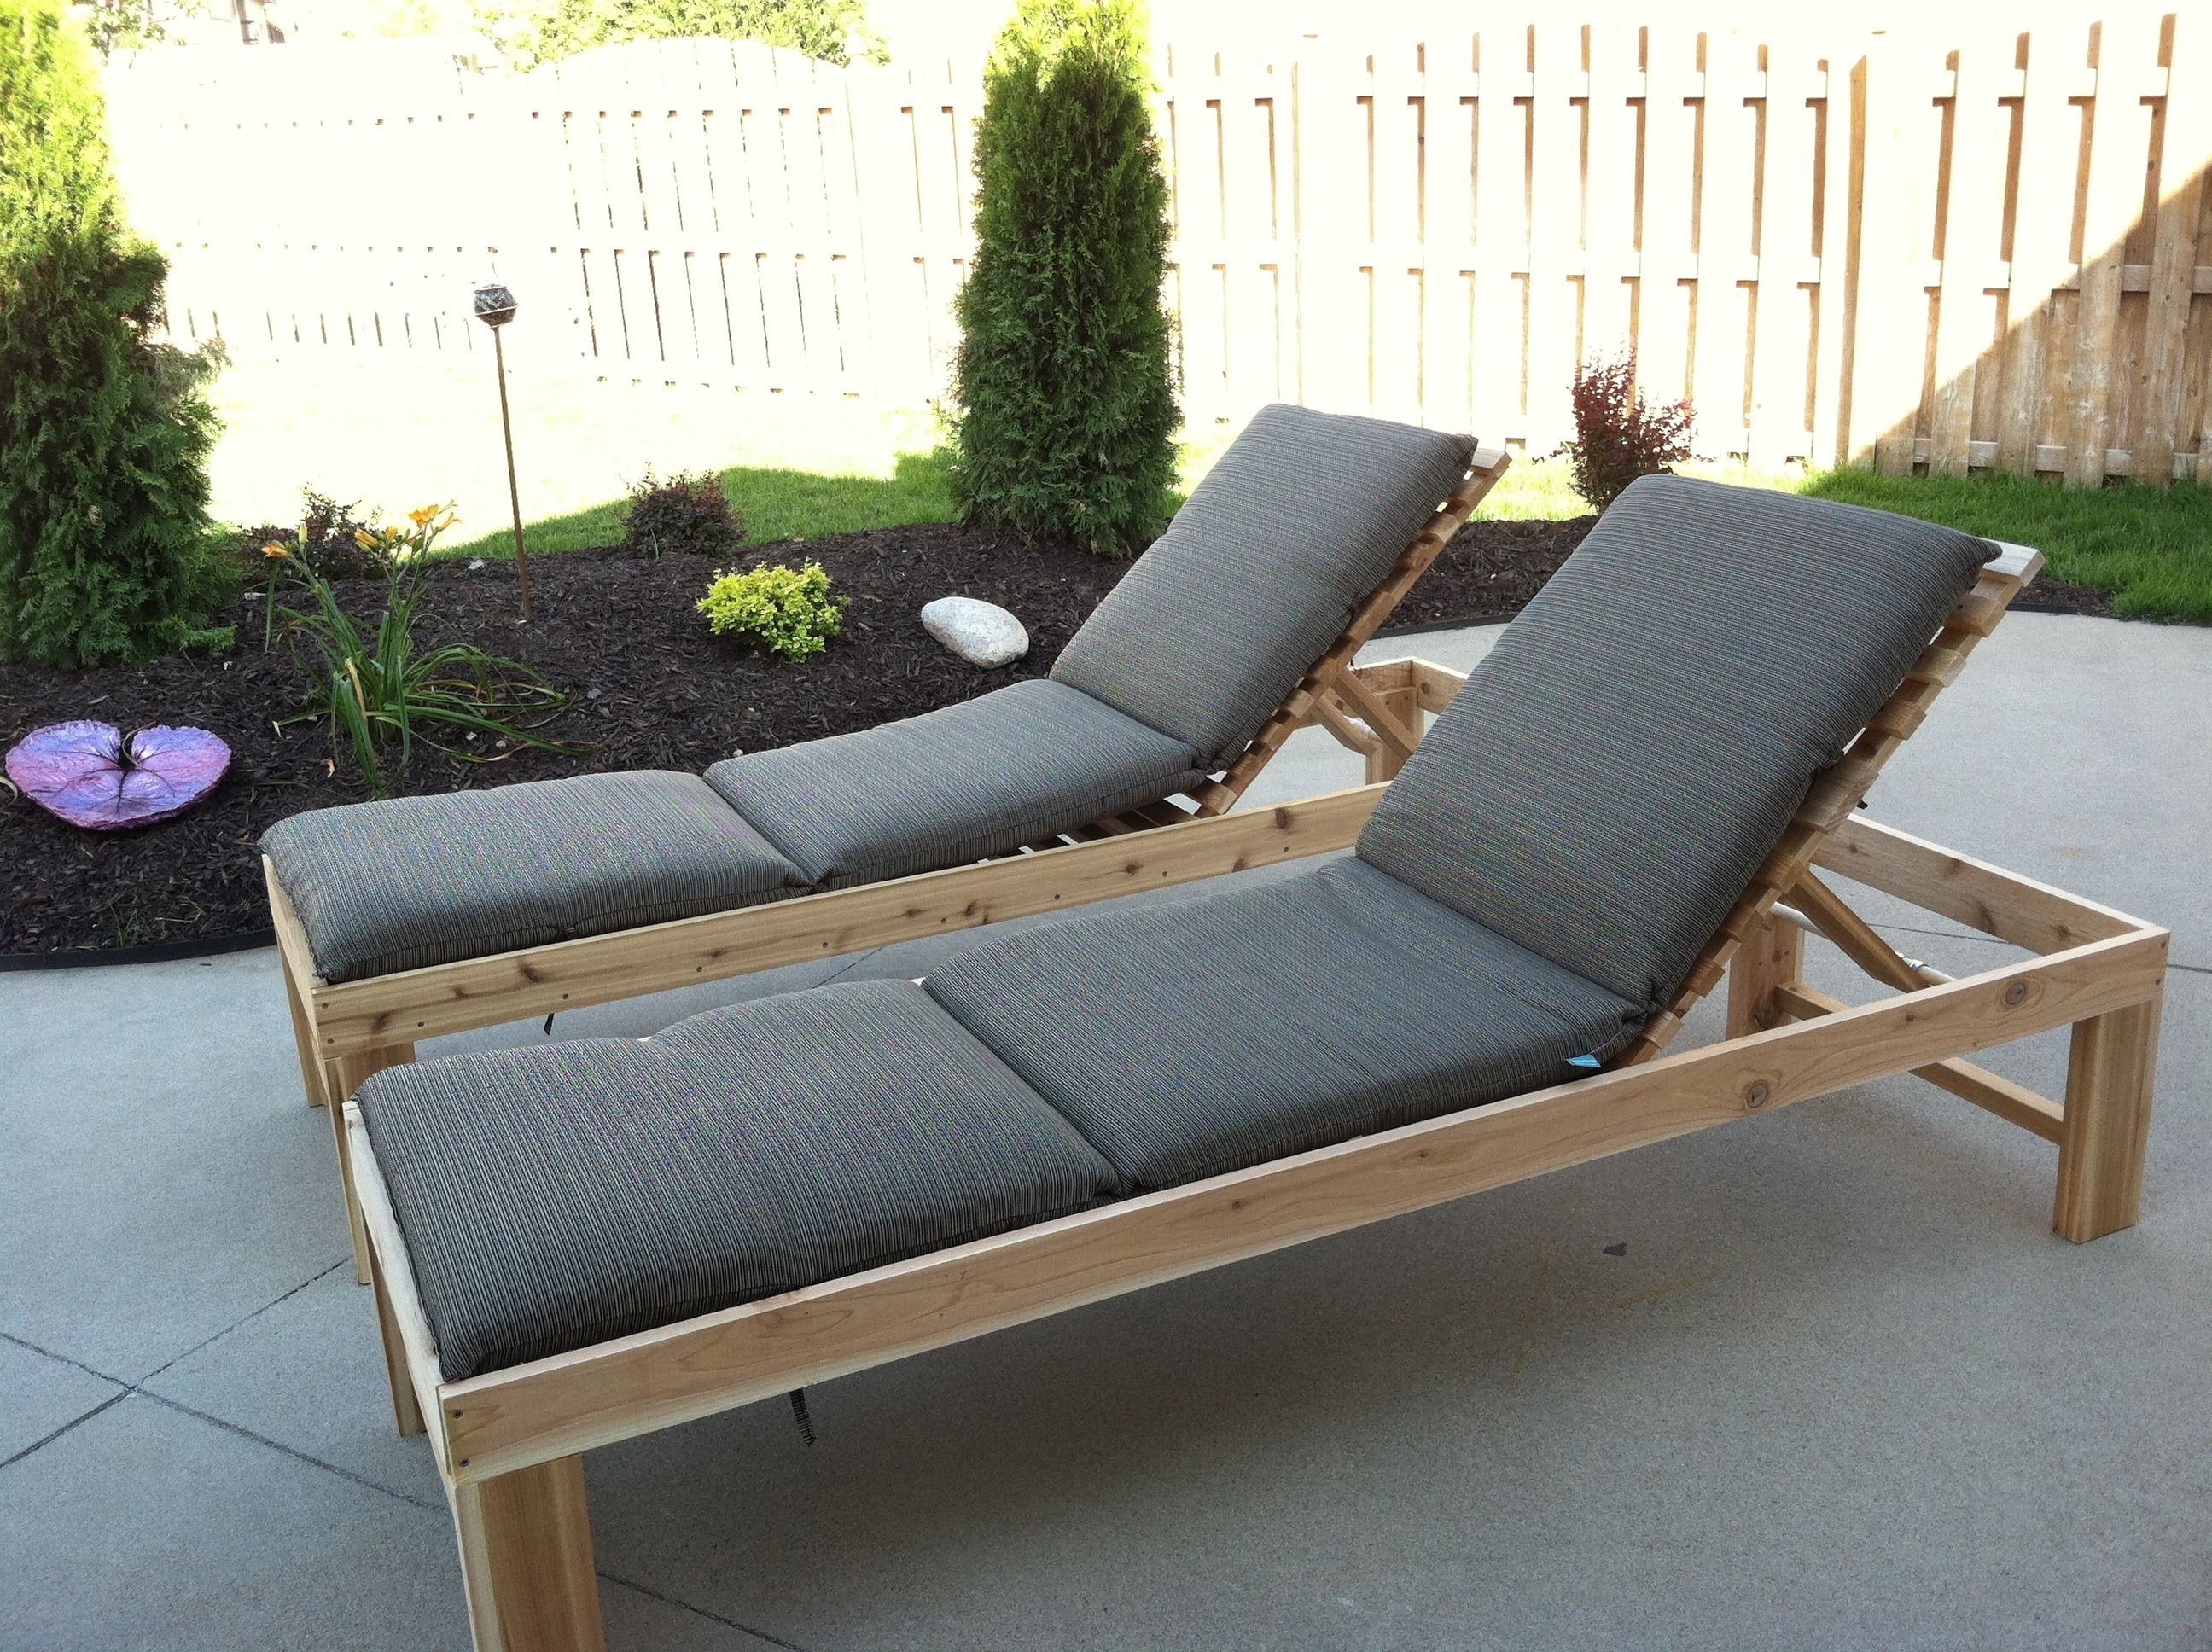 Outdoor Chaise Lounge – Diy Projects Within White Outdoor Chaise Lounges (View 7 of 15)